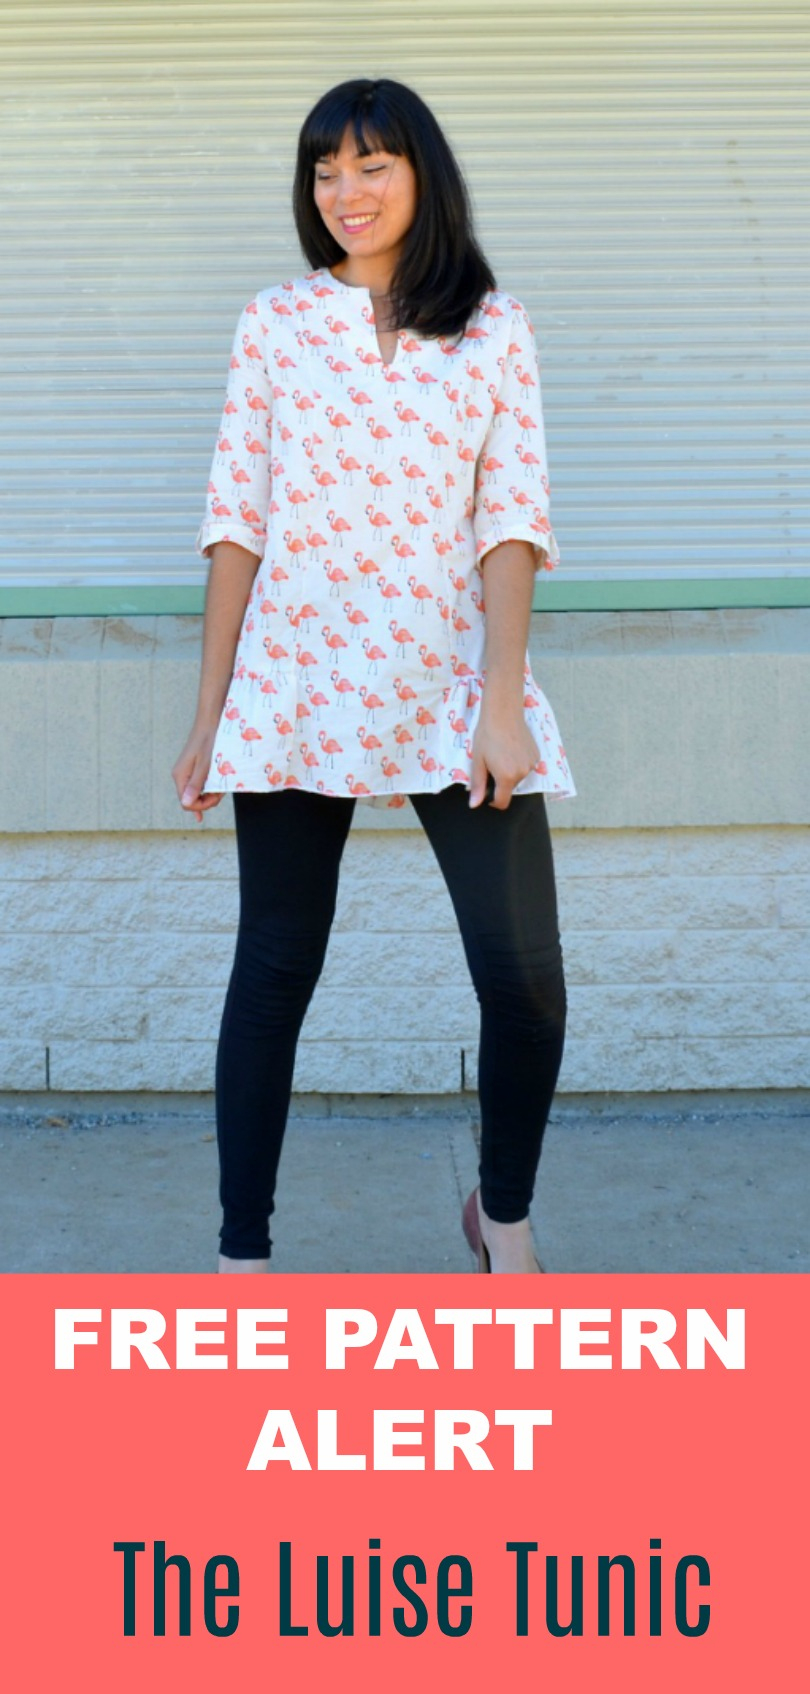 Free Pattern Alert: The Luise Tunic Pdf - On The Cutting Floor - Free Printable Blouse Sewing Patterns